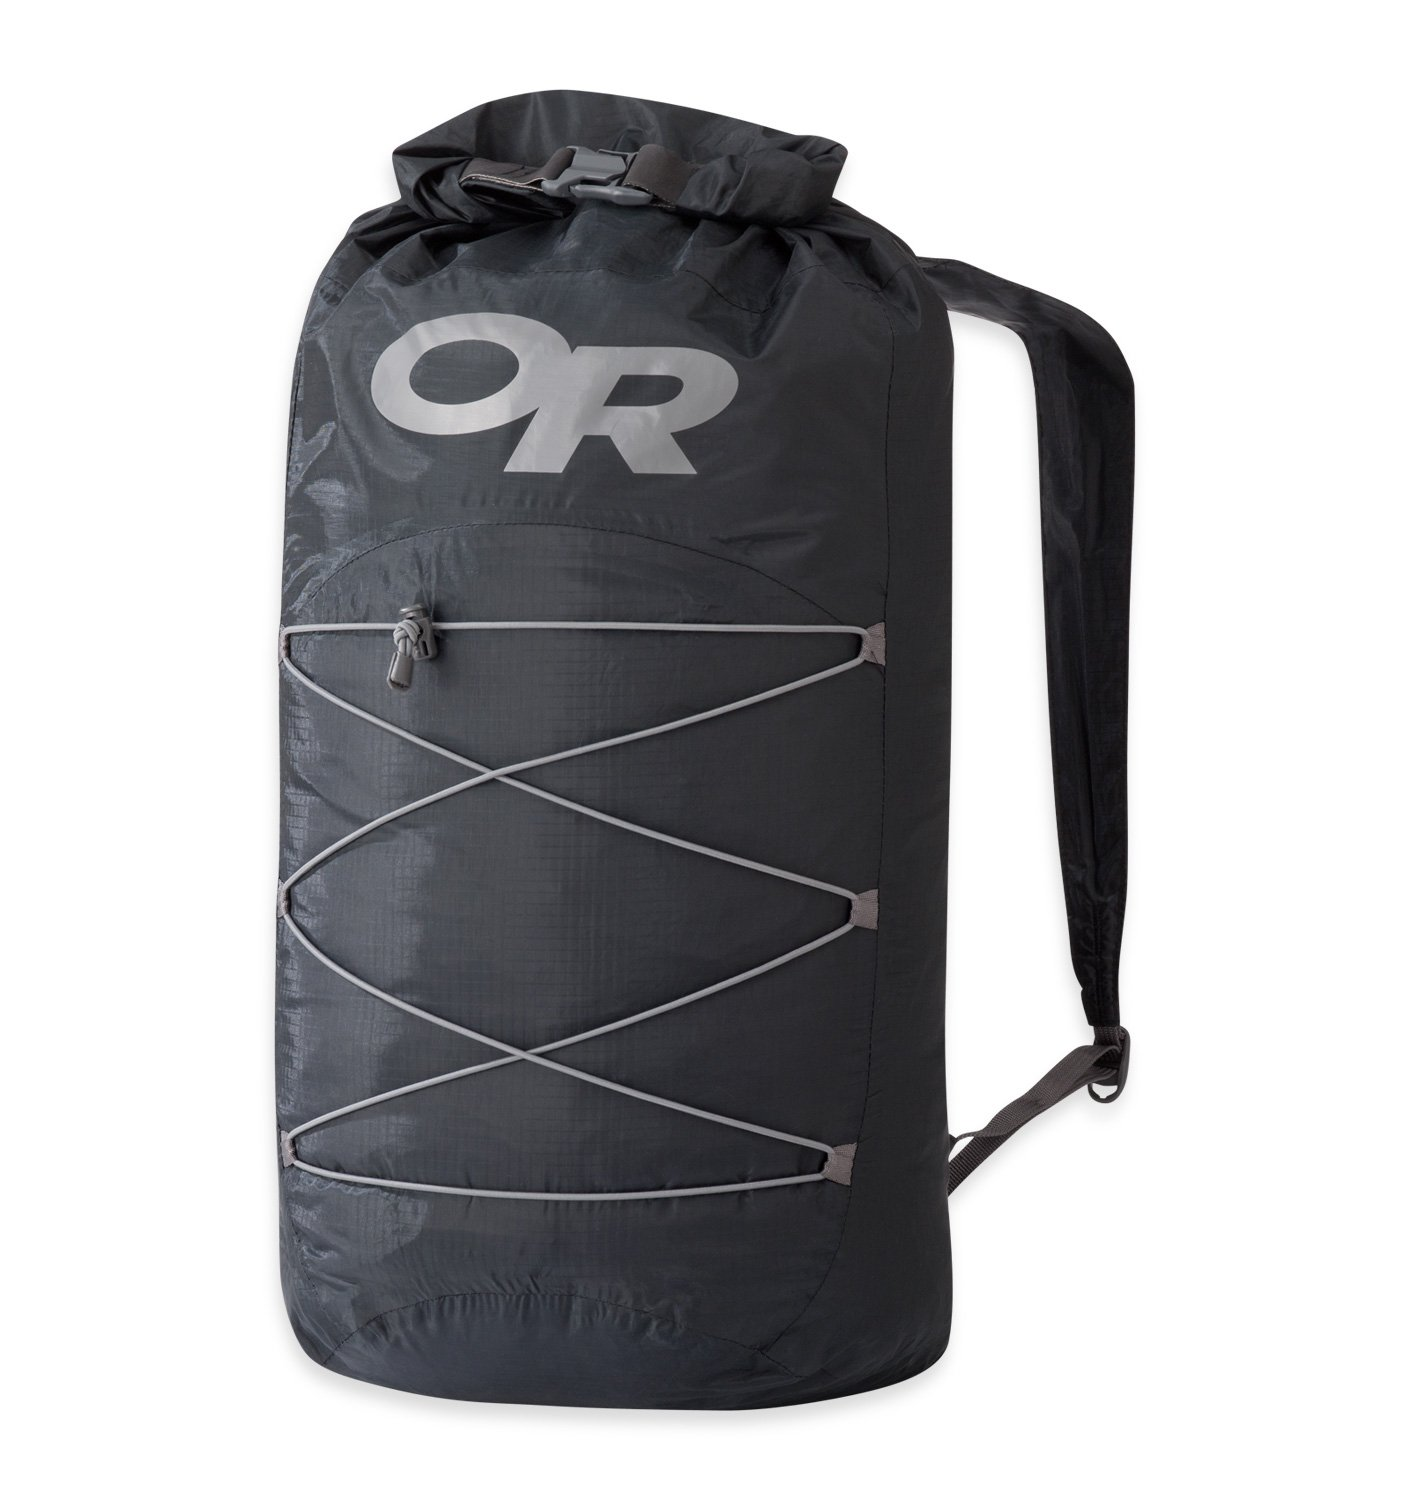 Outdoor Research Unisex Dry Isolation Pack, Black, 1size